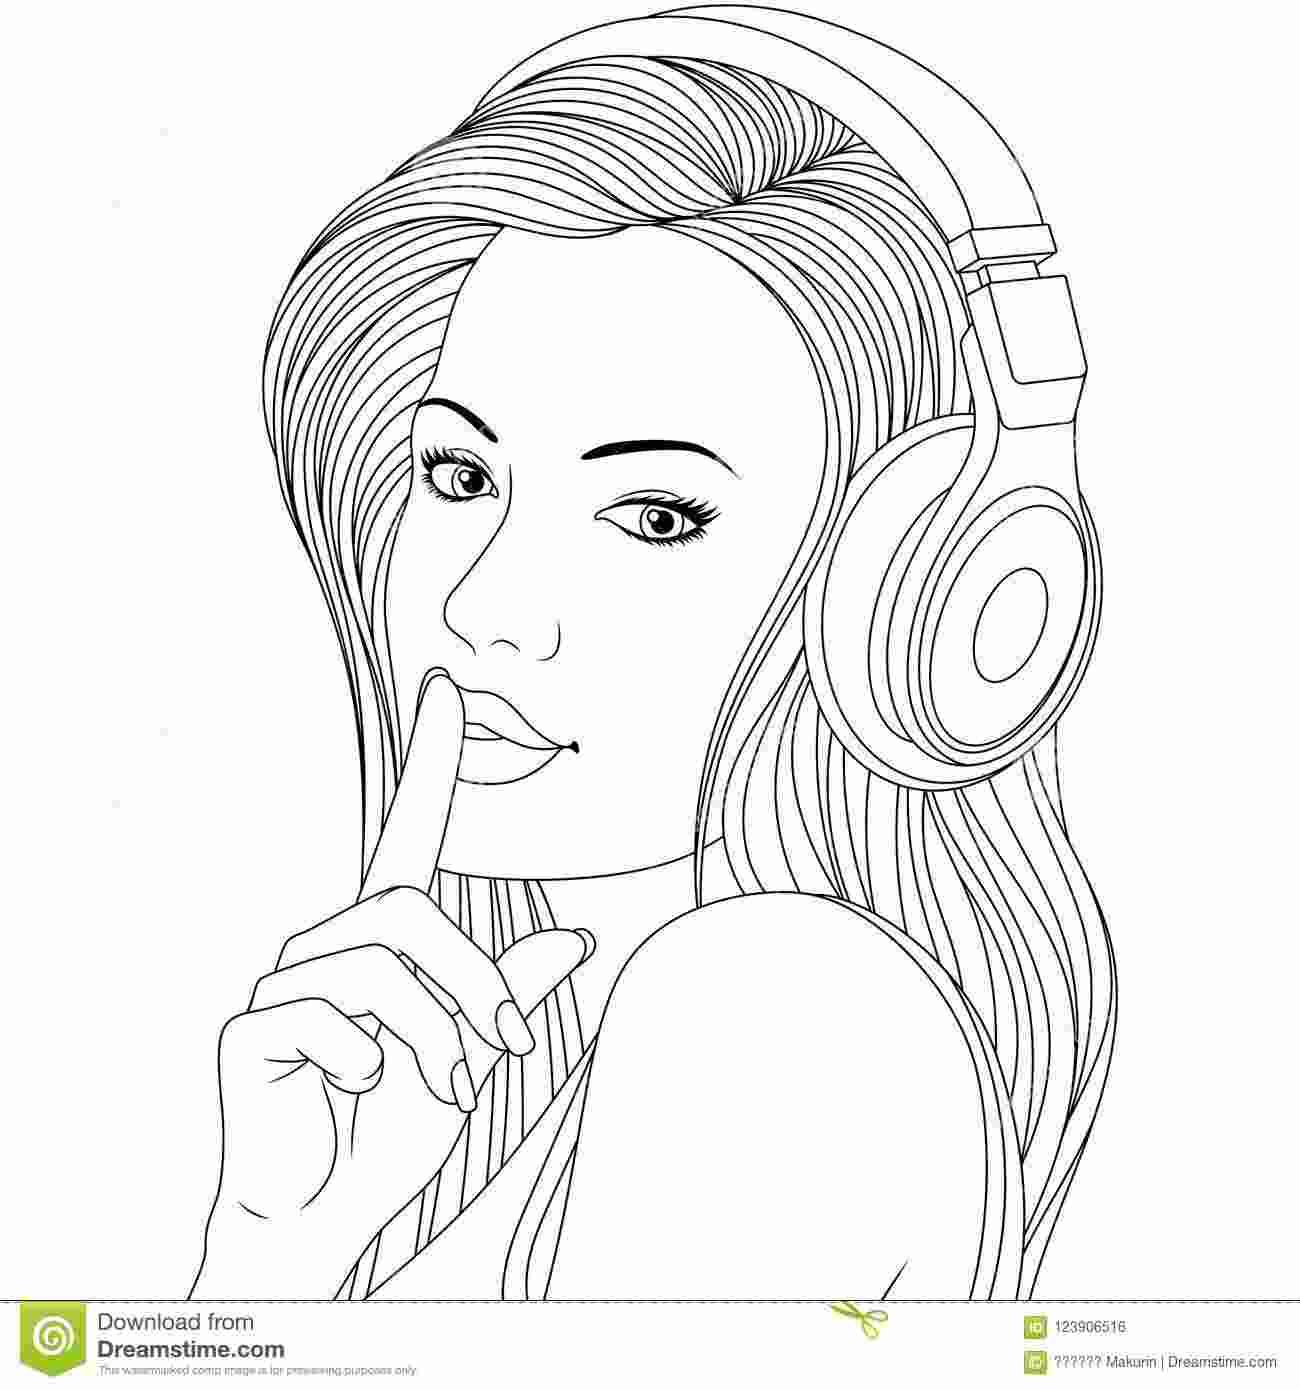 Beautiful Girl Coloring Pages To Print In 2020 Witch Coloring Pages Coloring Pages For Girls Coloring Pages For Teenagers